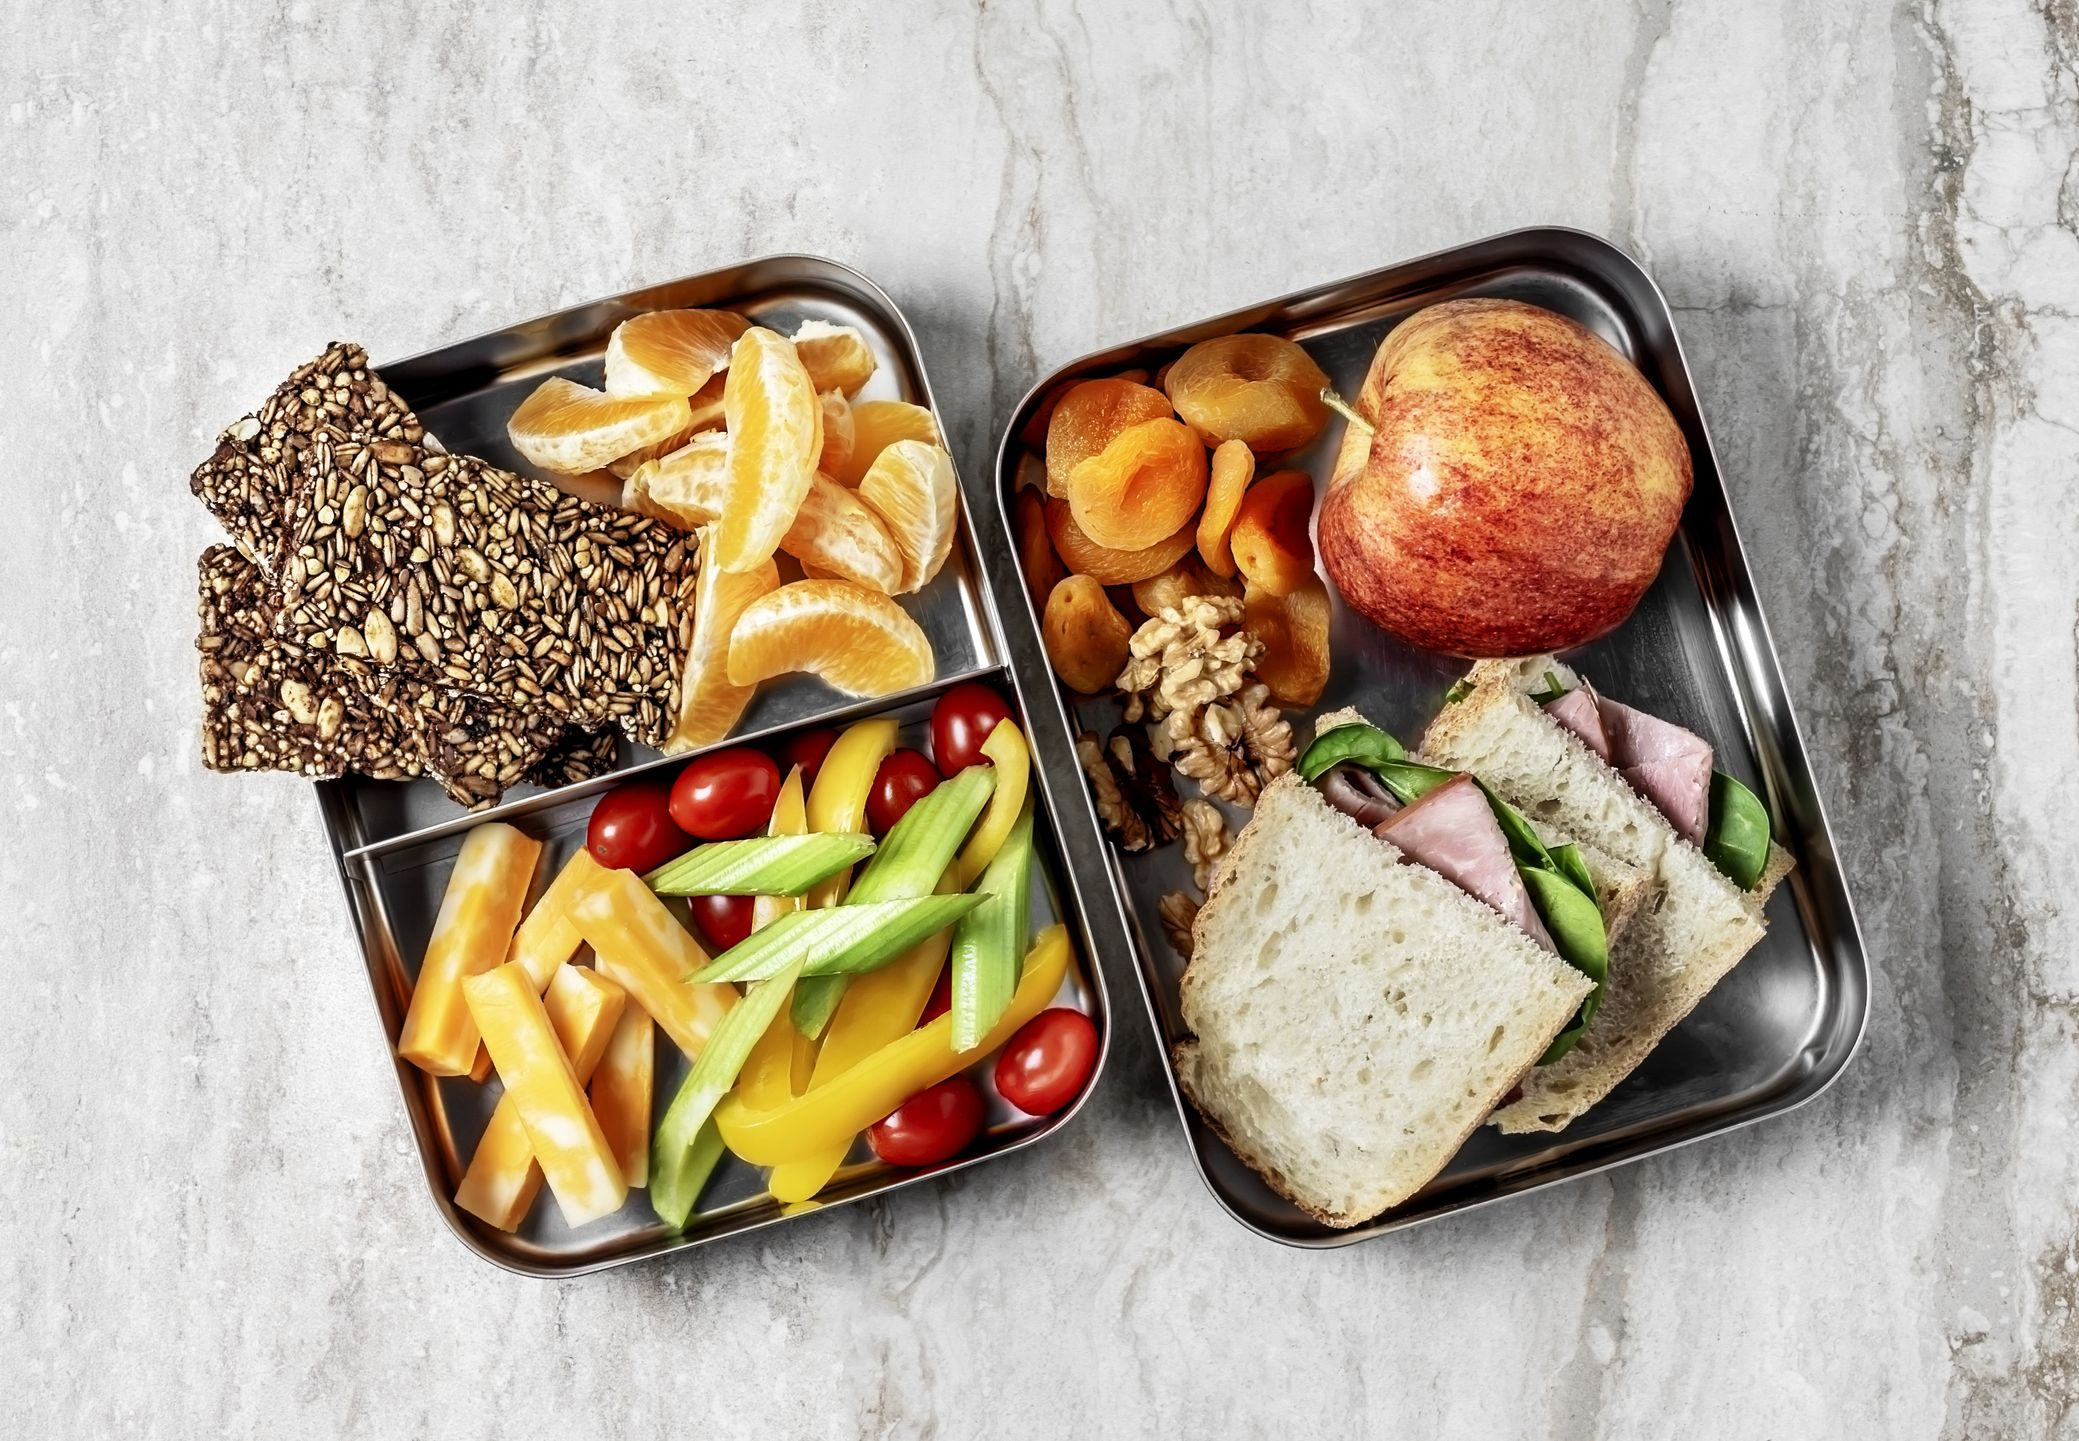 'BPF' and 'BPS' Chemicals Found in Food Containers Could Increase Your Obesity Risk